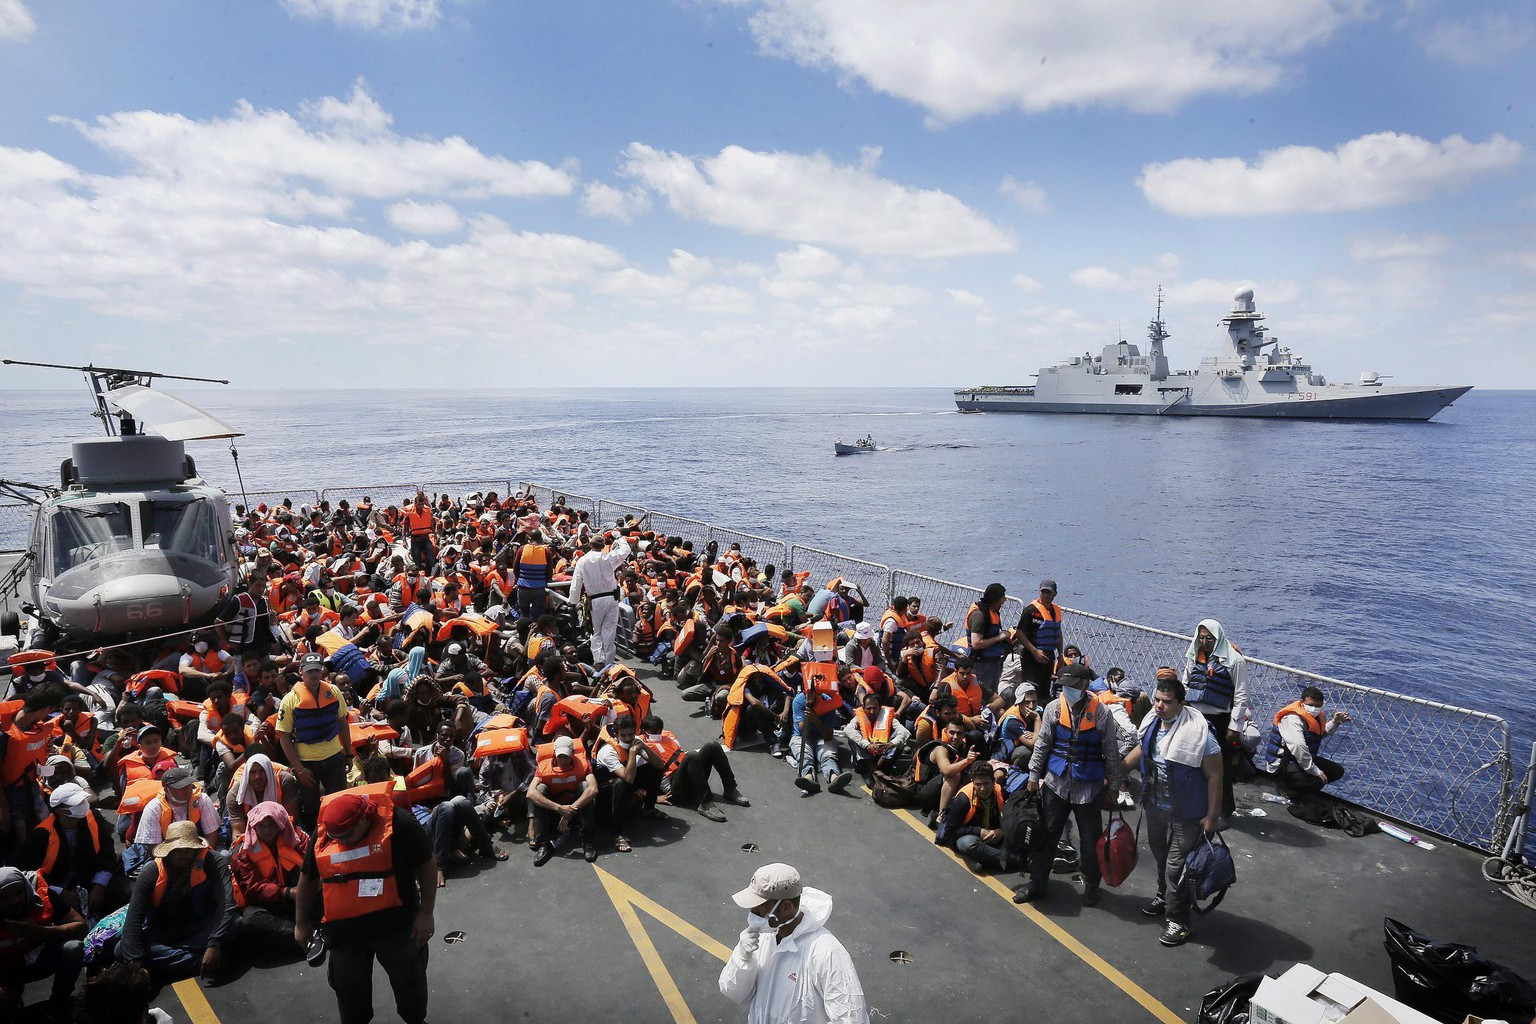 epa04380873 A picture made available on 02 September 2014 shows refugees being transferred from Italian Navy's frigate 'Euro' to 'Virgilio Fasan' (R) within the scope of Mare Nostrum operation in the Southern Mediterranean Sea, 30 August 2014. So far this year, more than 100,000 migrants have landed on Italian shores. Rome authorities have launched a maritime search-and-rescue operation to prevent deaths at sea, but they say they cannot continue funding it on their own.  EPA/GIUSEPPE LAMI